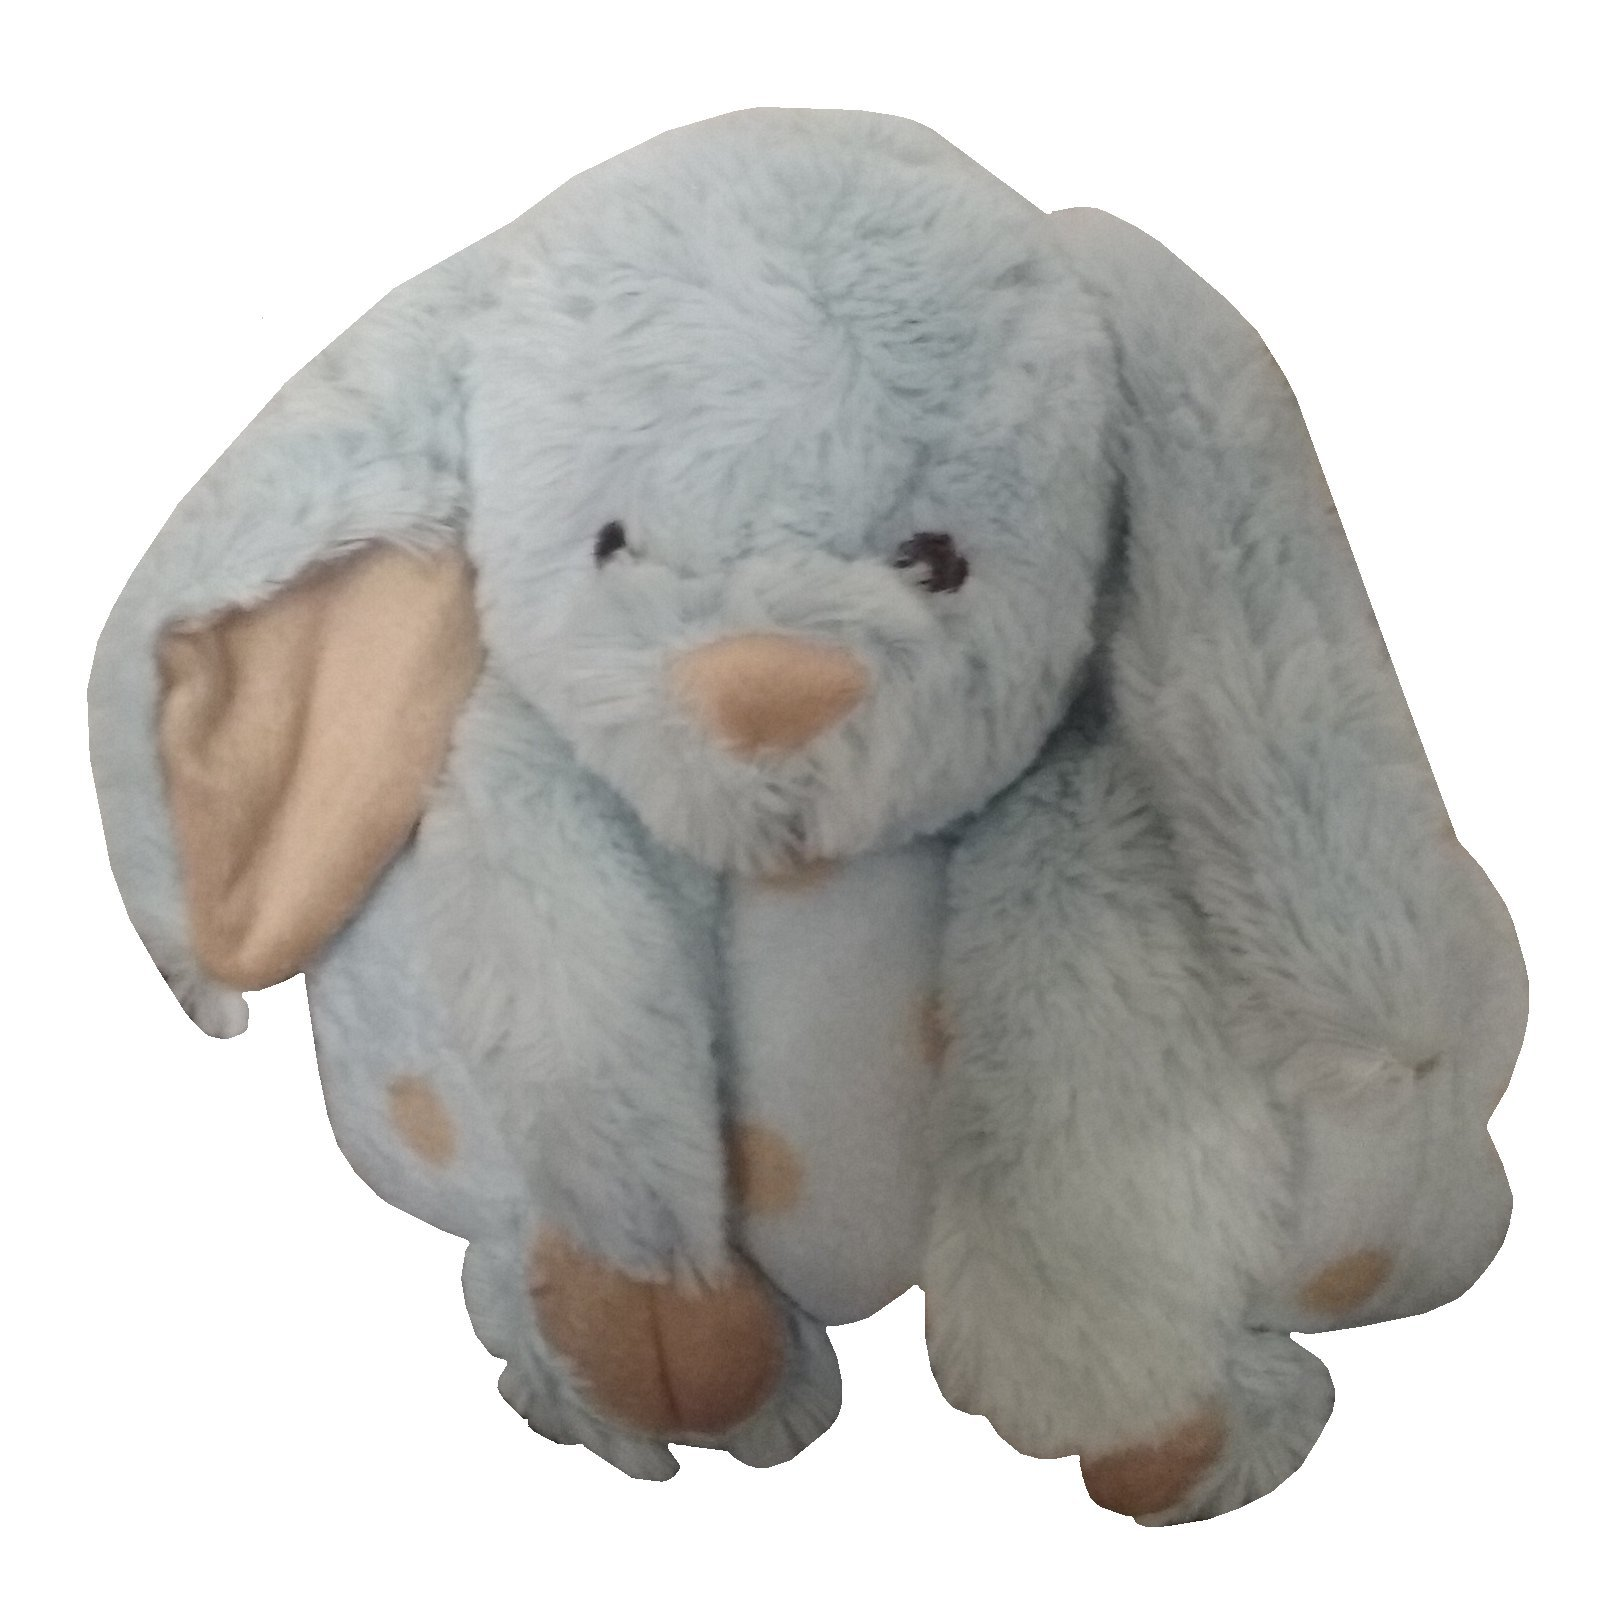 Animal and Blanket Toy and Blanket,Blue Bunny